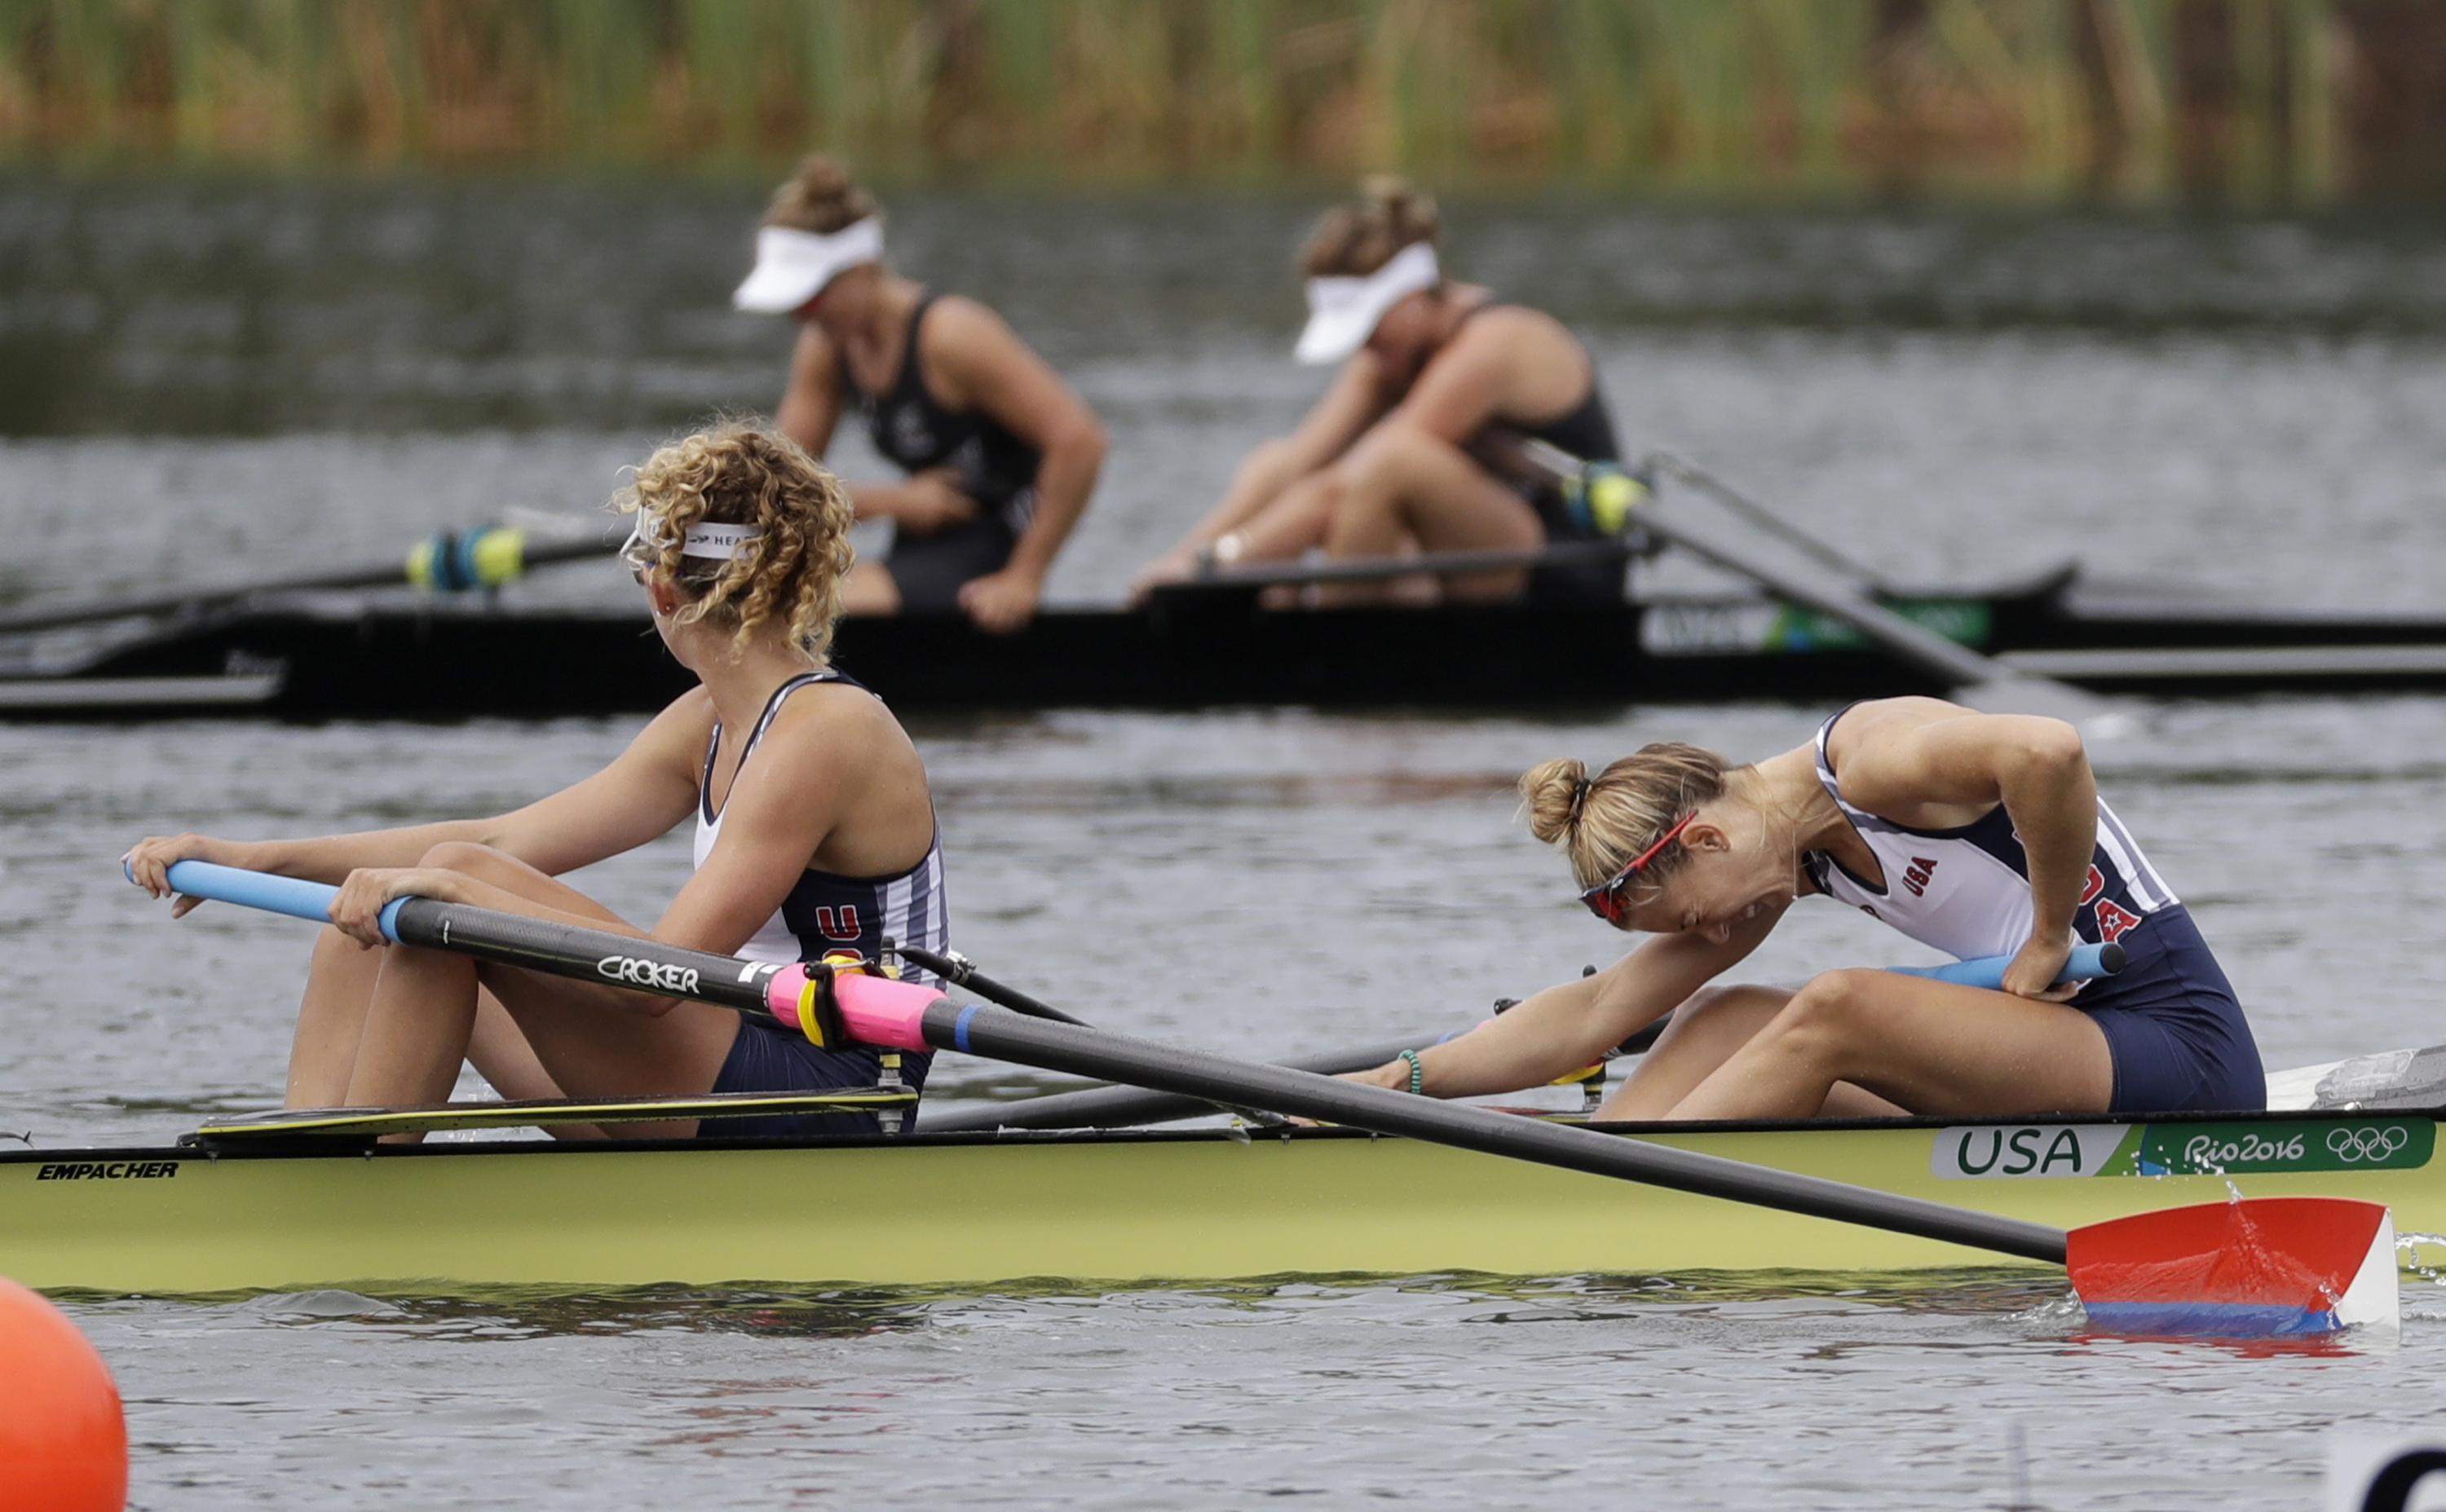 Felice Mueller and Grace Luczak, of United States, rest after competing in the women's rowing pair final during the 2016 Summer Olympics in Rio de Janeiro, Brazil, Friday, Aug. 12, 2016. (AP Photo/Luca Bruno)